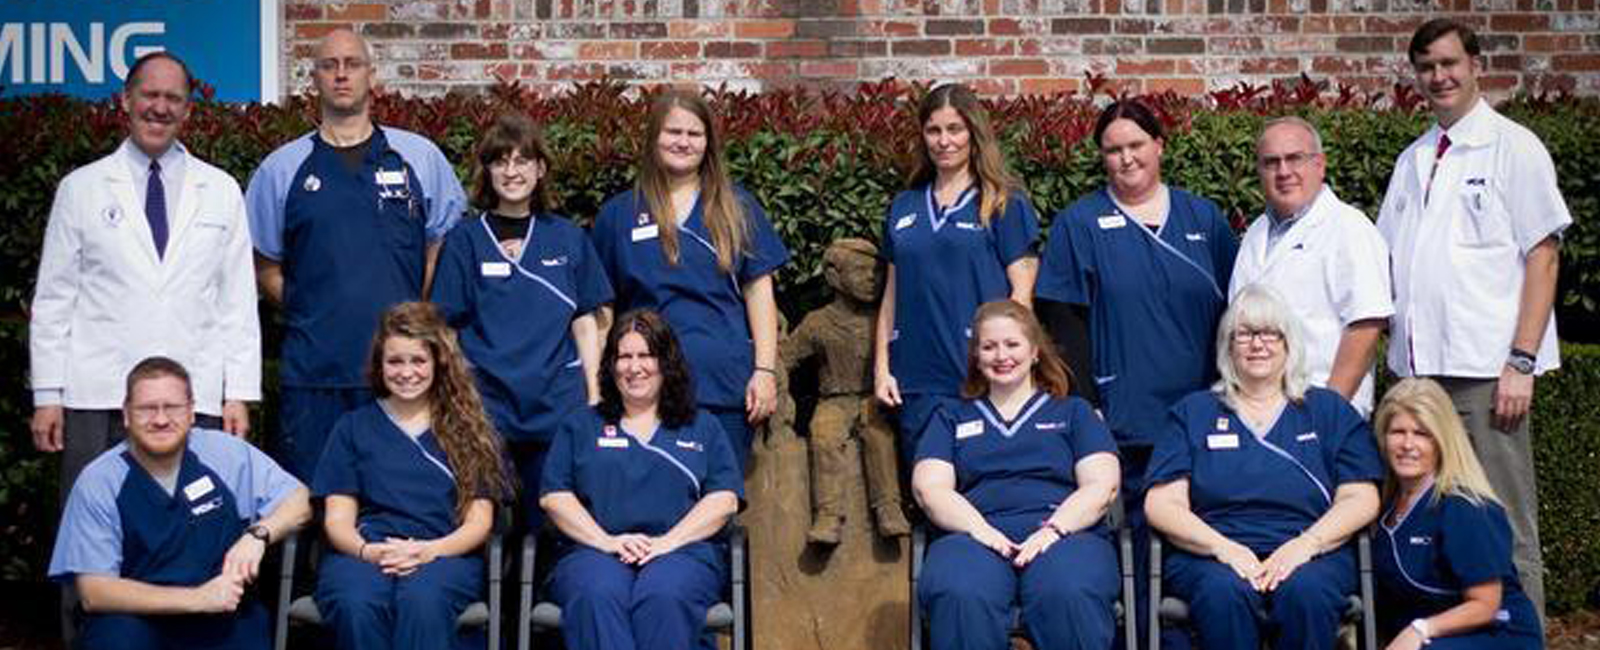 Homepage Team Picture of VCA Woodland East Animal Hospital